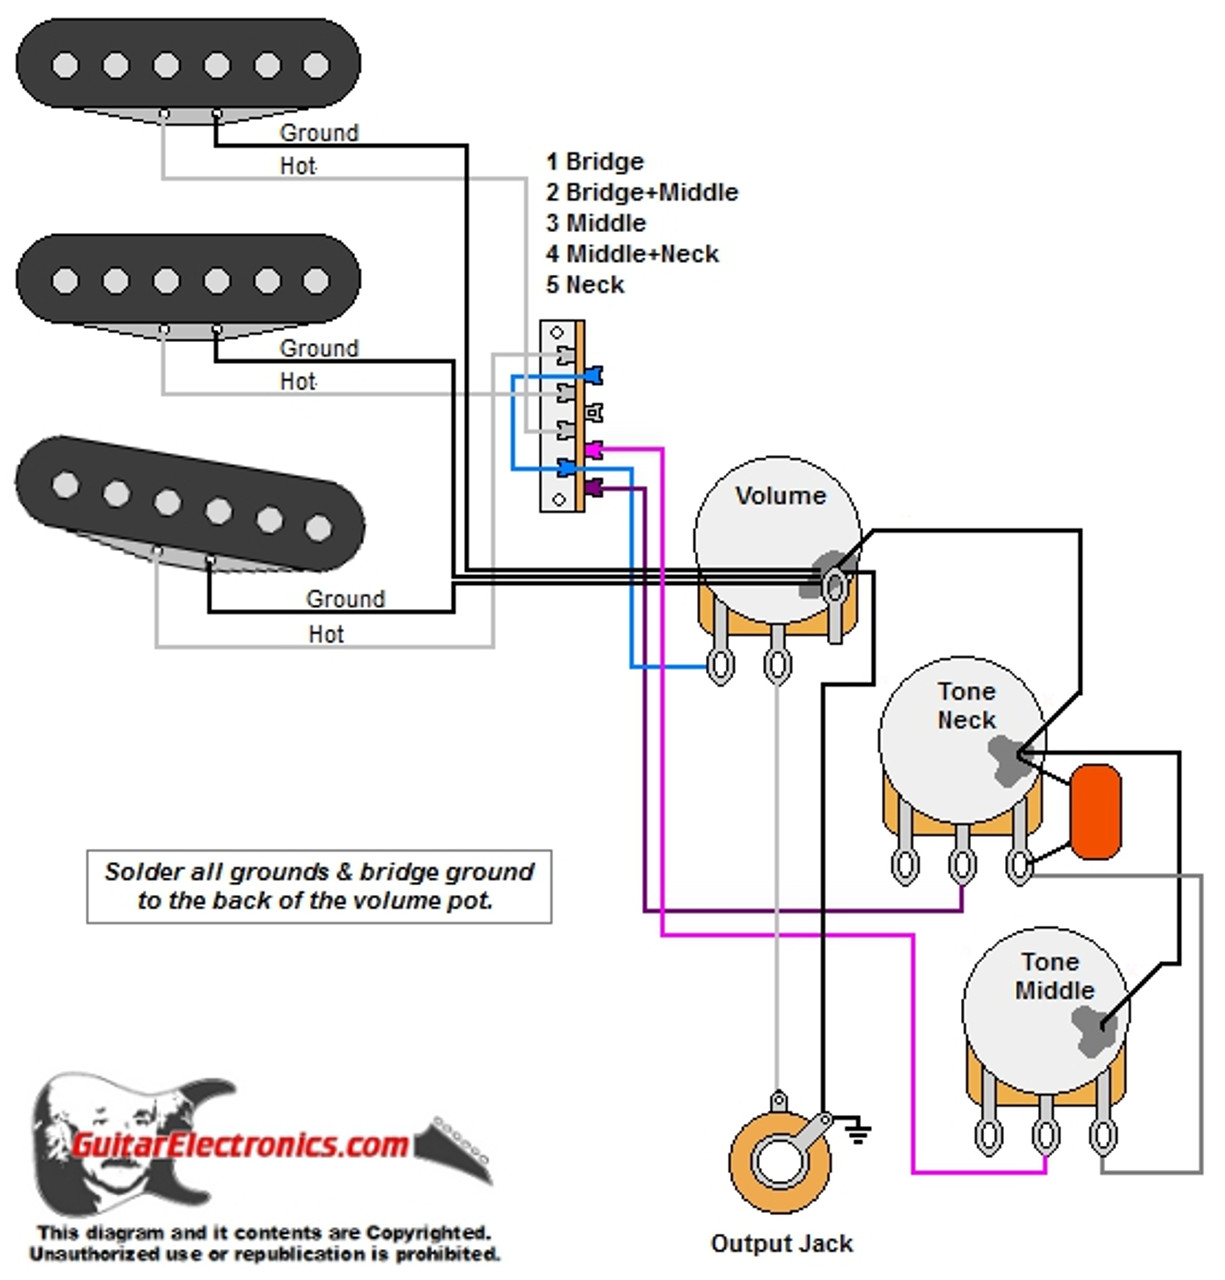 Terrific Fender Humbucker Pickup Wiring Diagrams Diagram Data Schema Letkol Mohammedshrine Wiring Cloud Letkolmohammedshrineorg